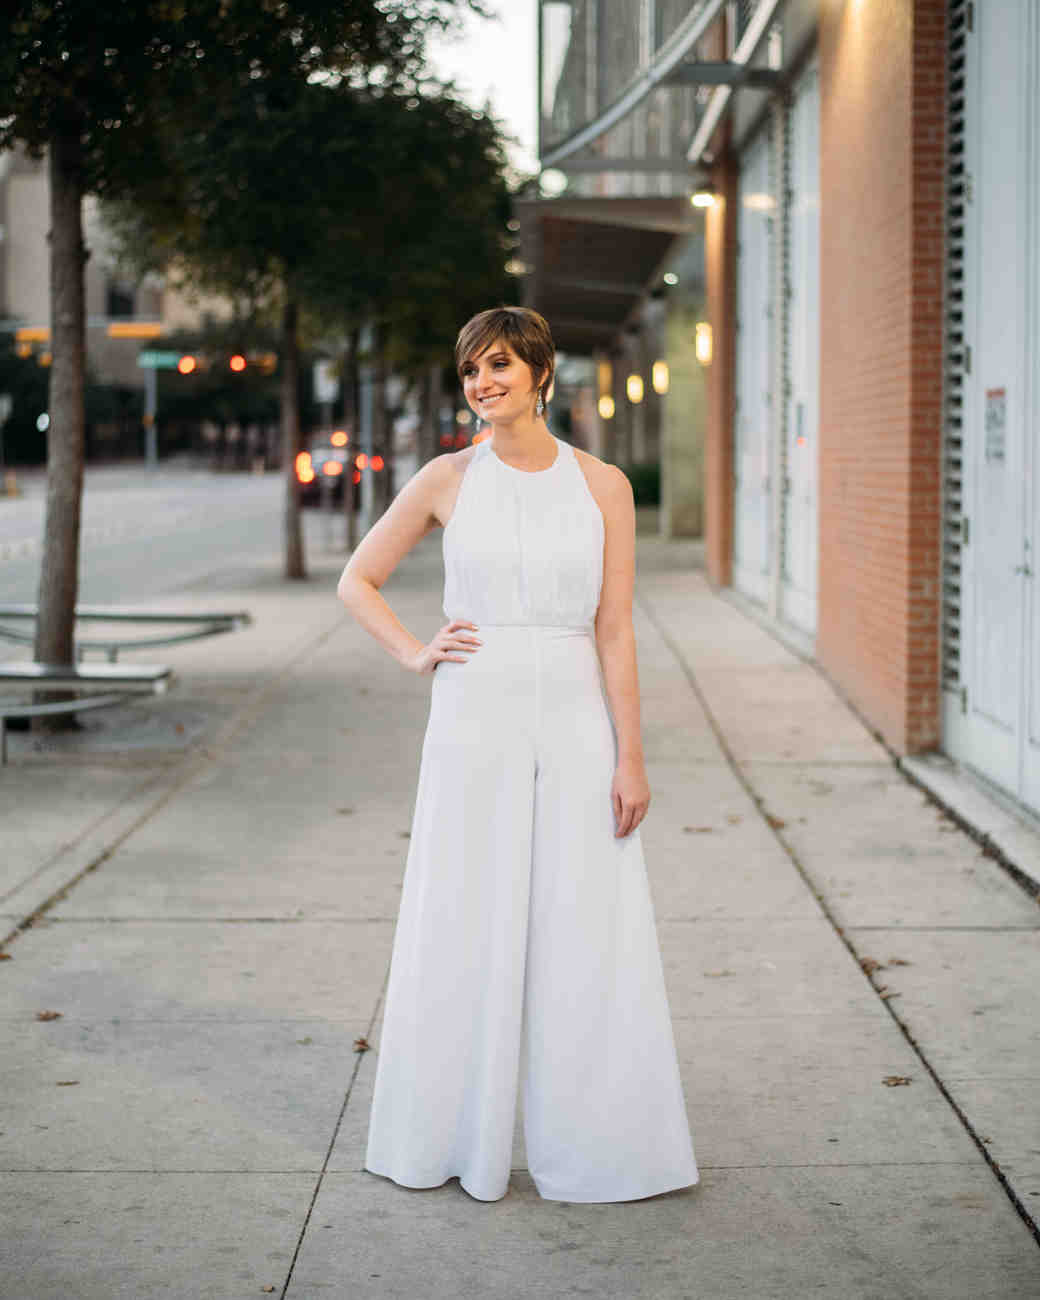 Jumpsuits To Wear To A Wedding: Real Brides Who Nailed The Bridal Jumpsuit Look